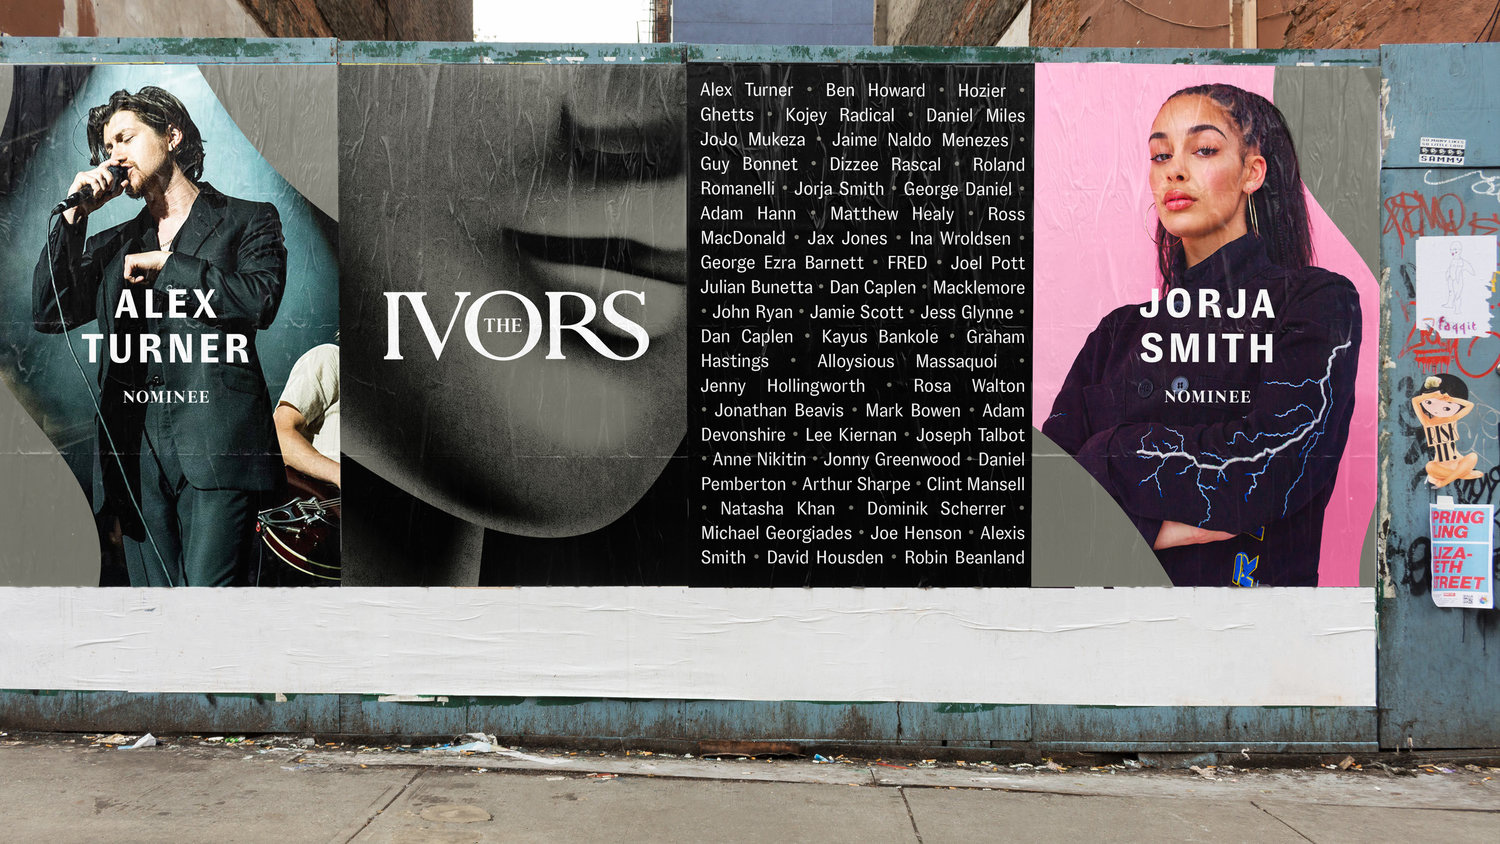 New Logo and Identity for The Ivors by The Playground